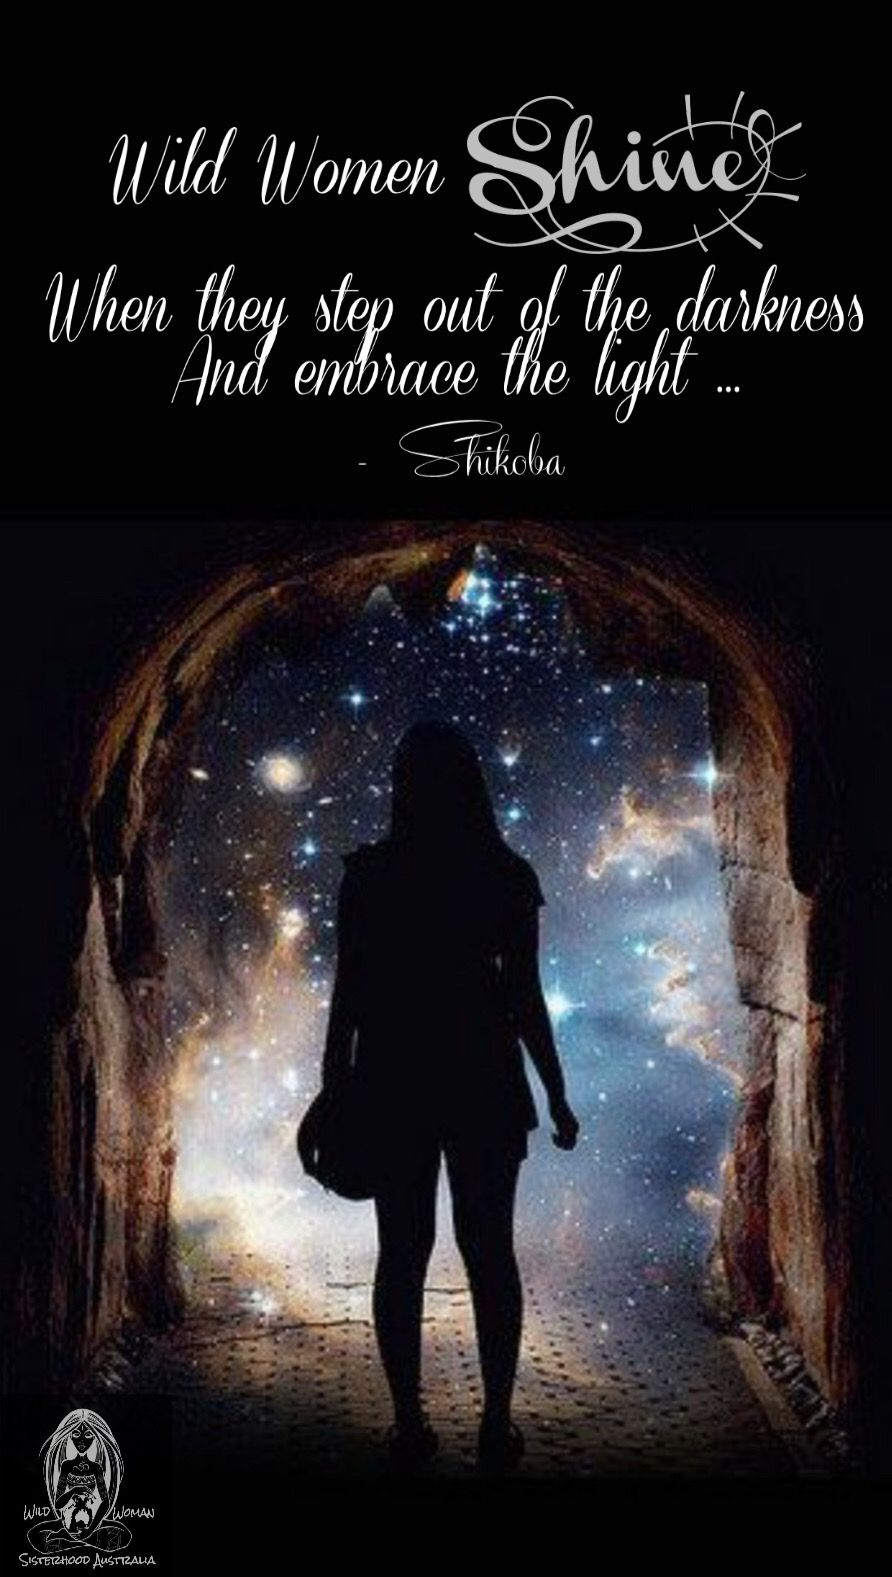 Wild Women Shine When They Step Out Of The Darkness And Embrace The Light Shikoba Nature Quotes Wild Woman Wild Women Sisterhood